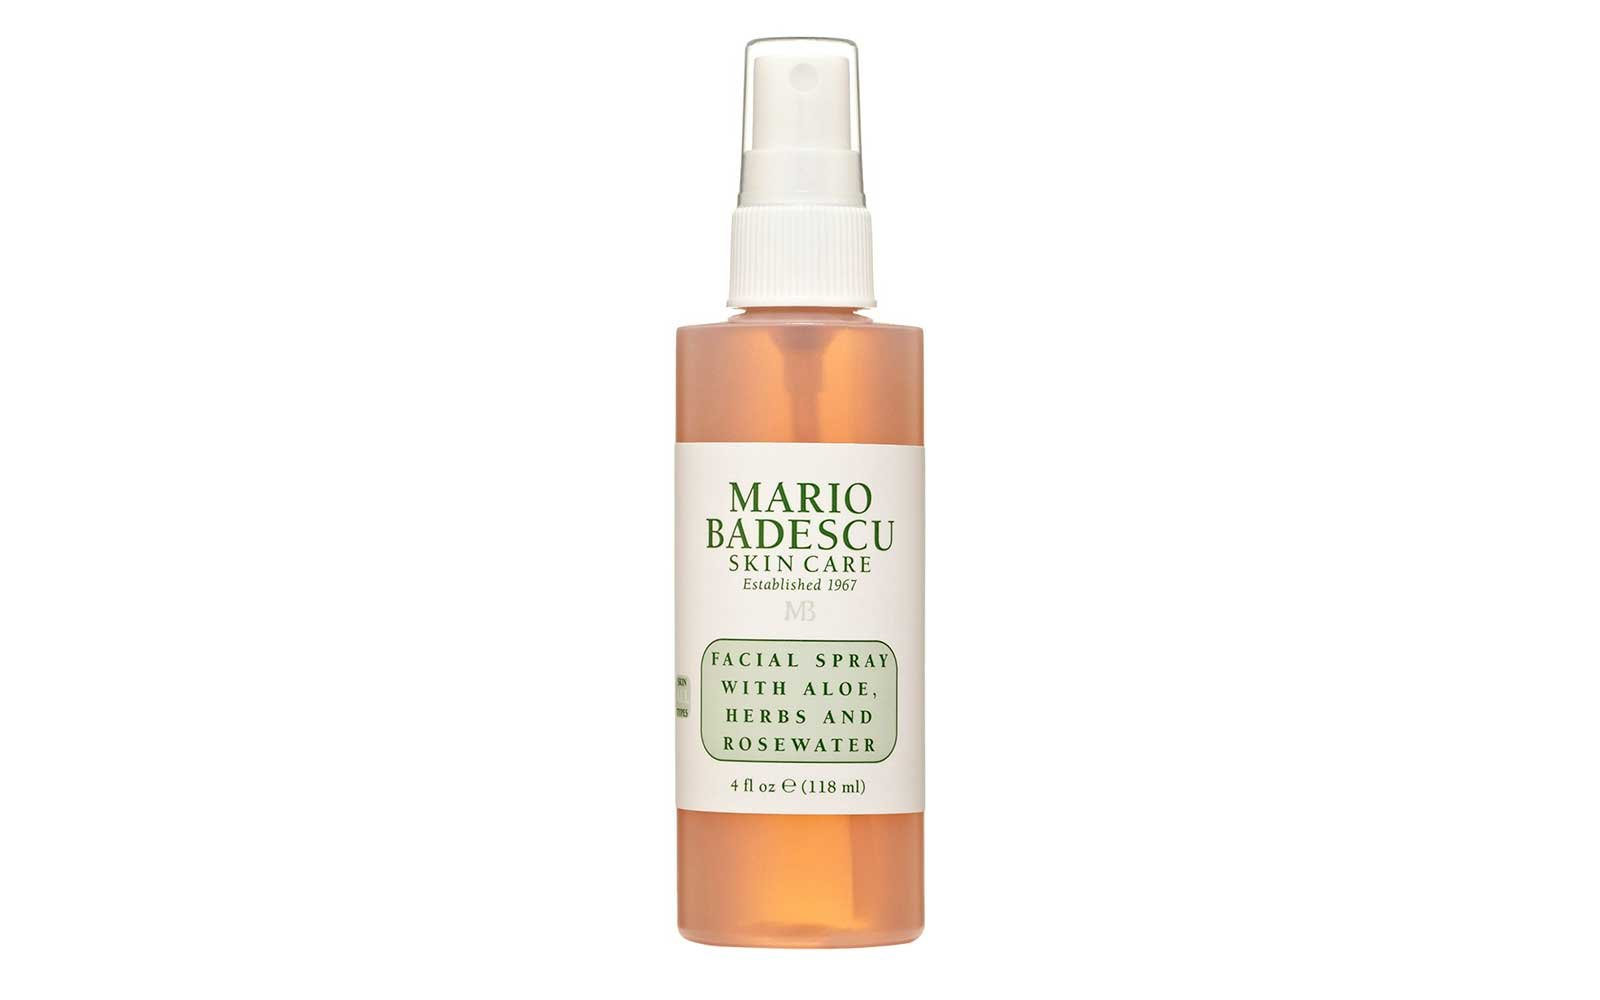 Mario Badescu Face Spray